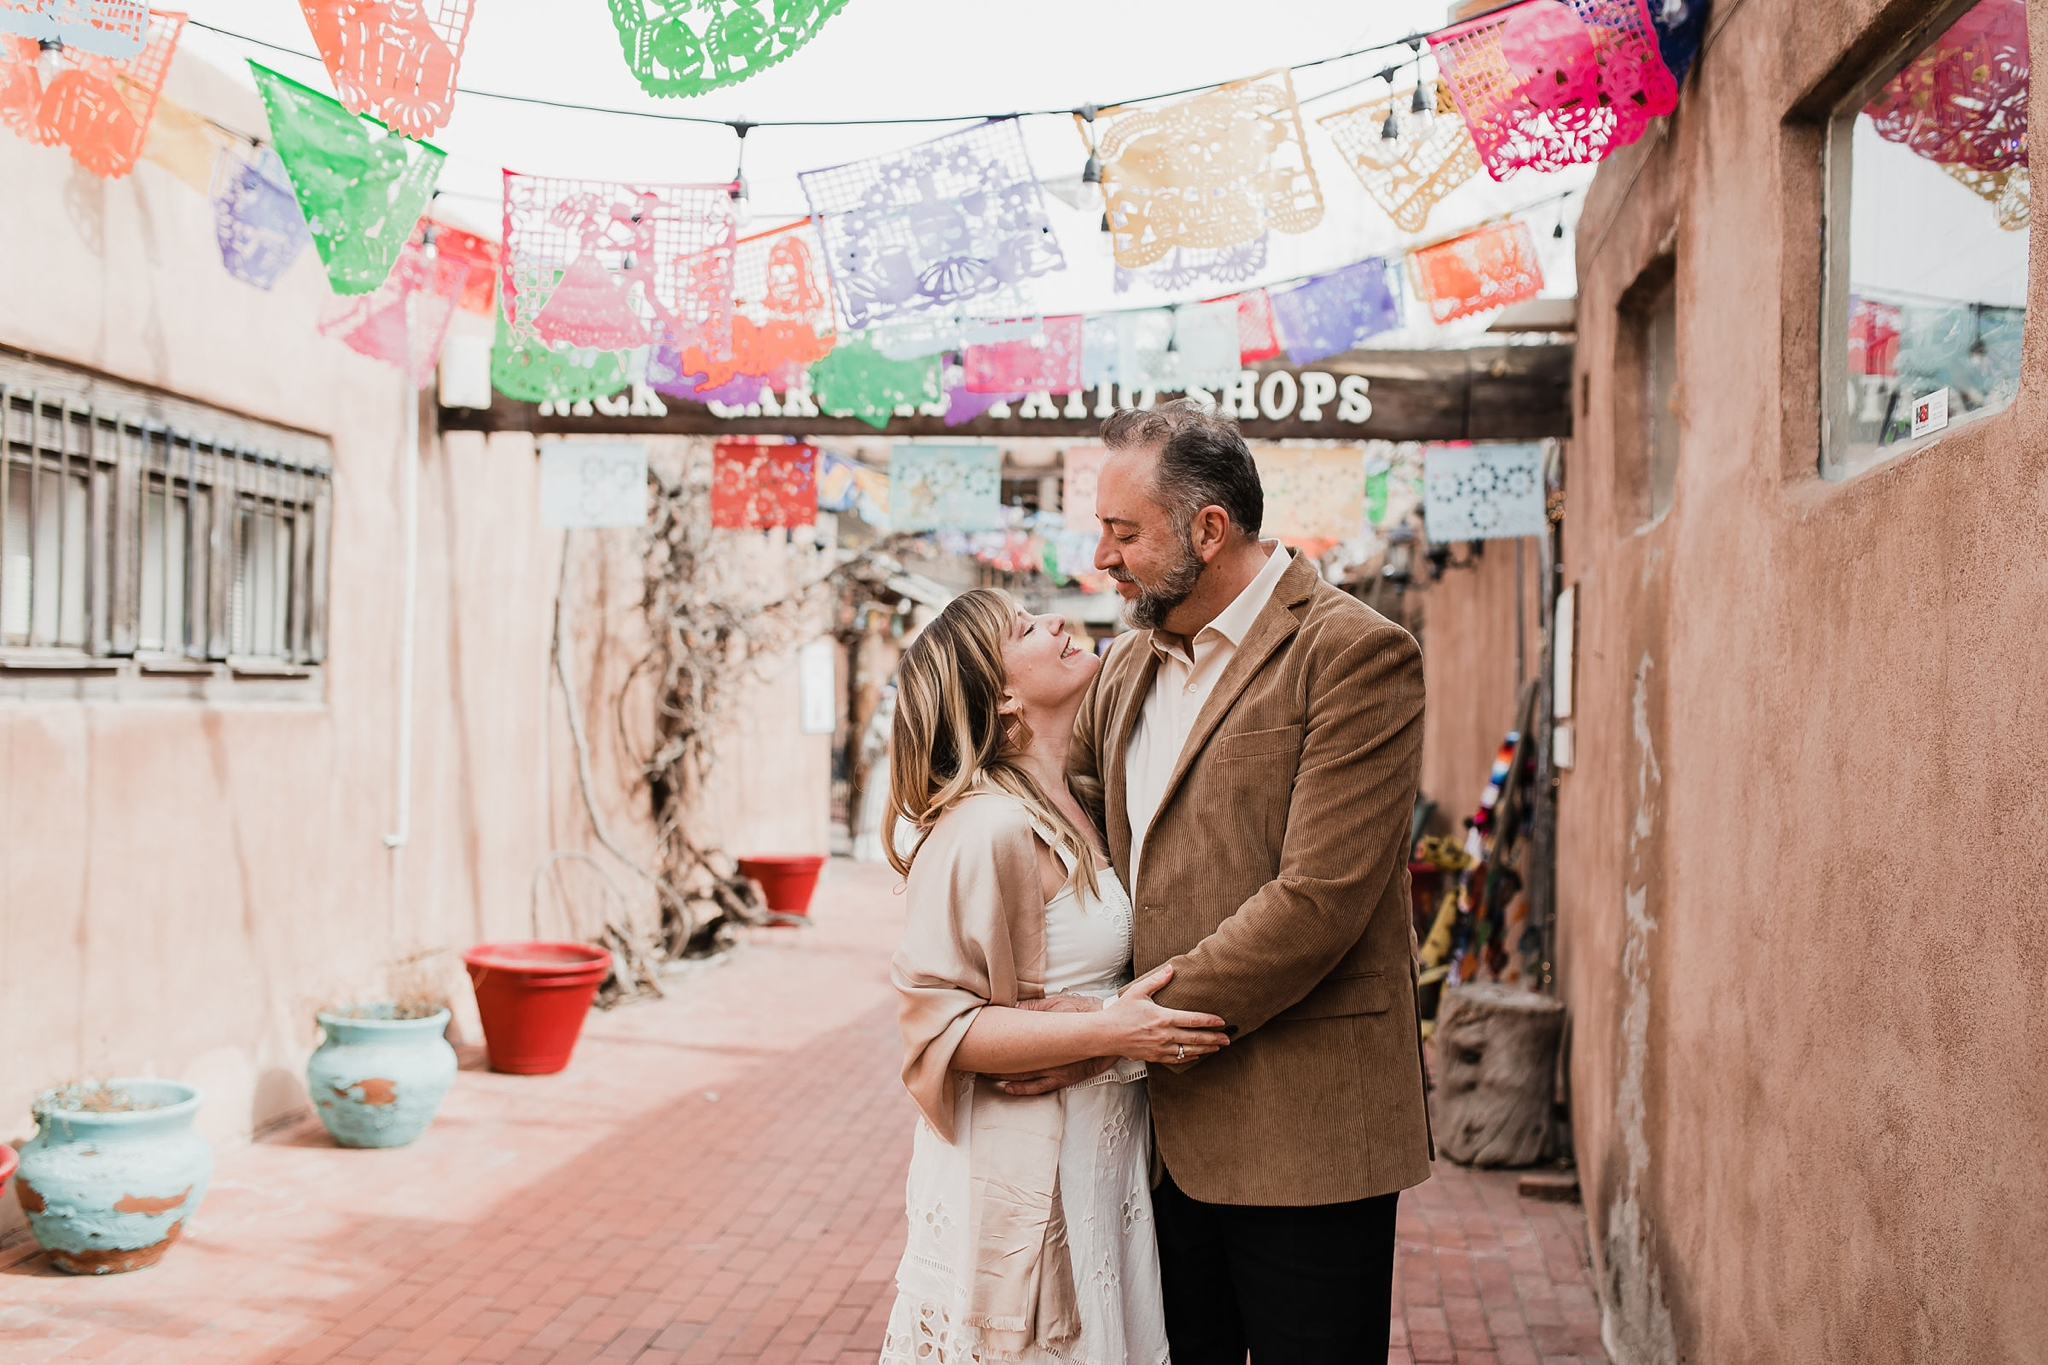 Alicia+lucia+photography+-+albuquerque+wedding+photographer+-+santa+fe+wedding+photography+-+new+mexico+wedding+photographer+-+new+mexico+engagement+-+albuquerque+engagement+-+old+town+engagement_0001.jpg